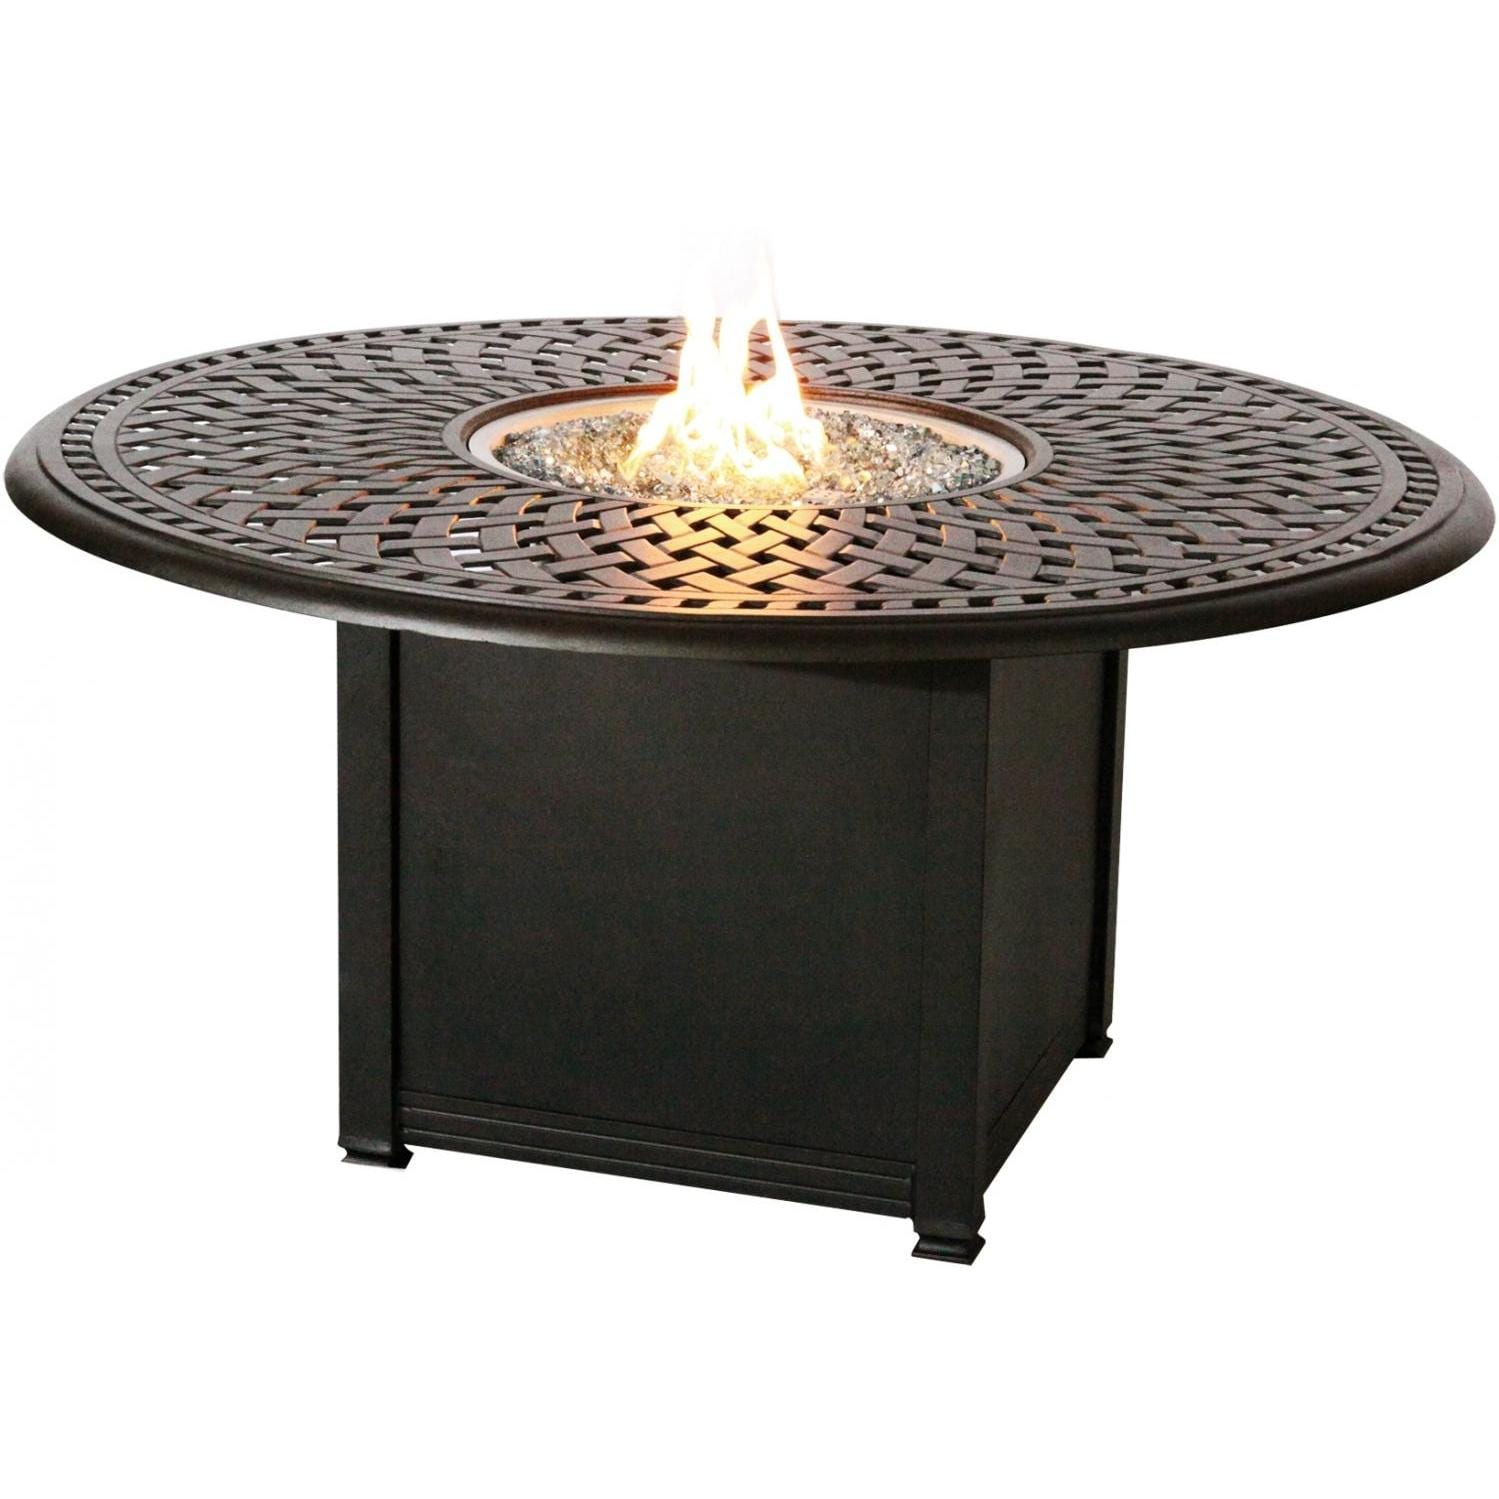 Darlee Round Patio Conversation Table With Propane Fire Pit   Antique Bronze